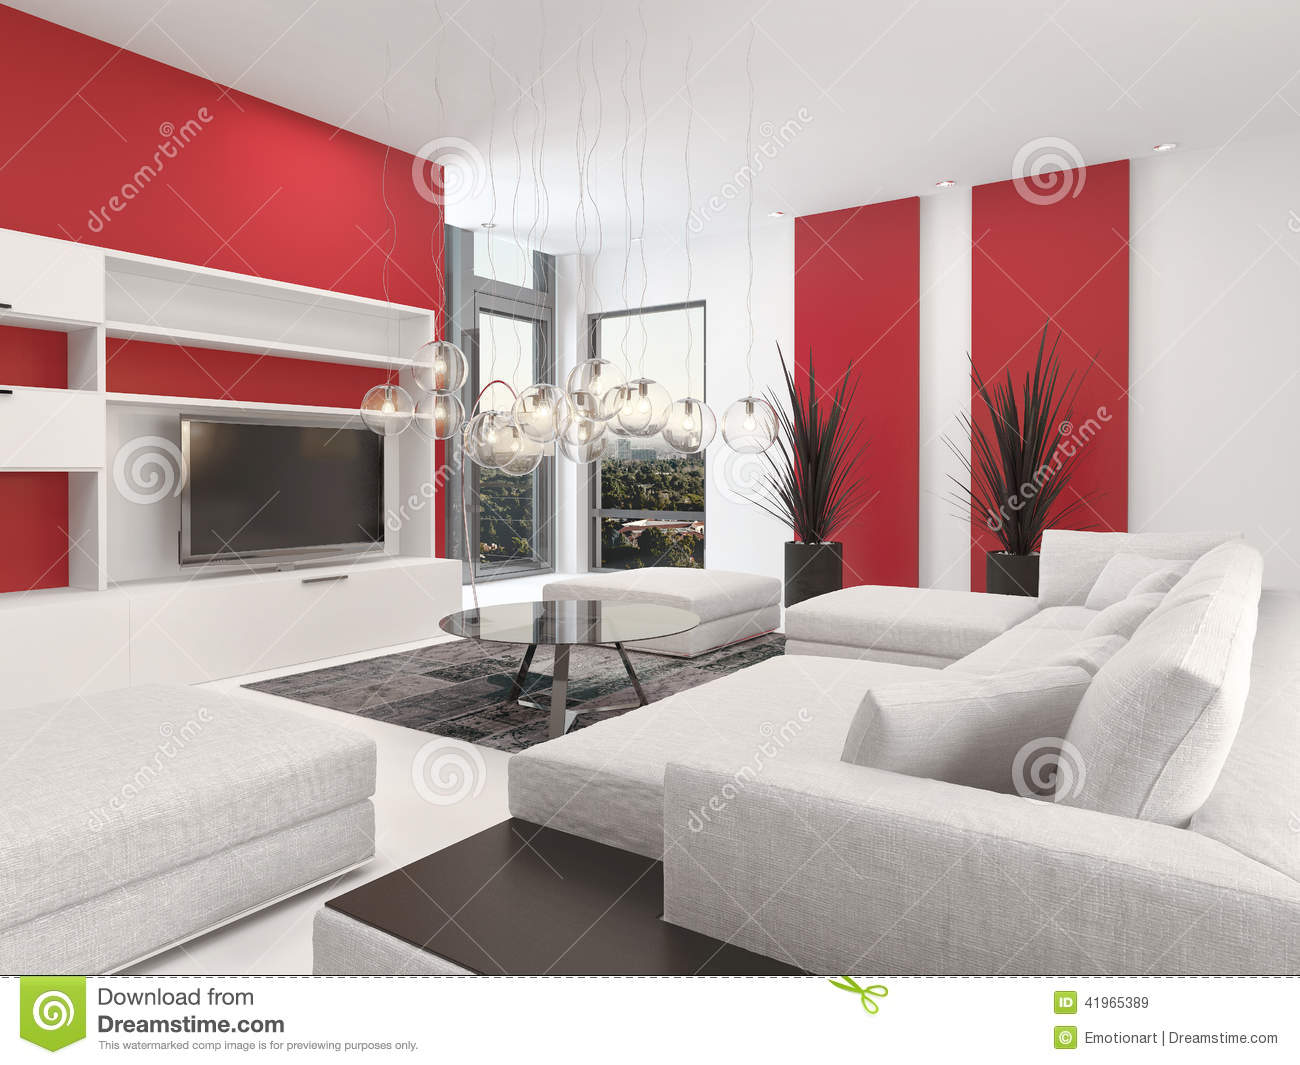 Contemporary Living Room Interior With Red Accents Stock Illustration Image 41965389